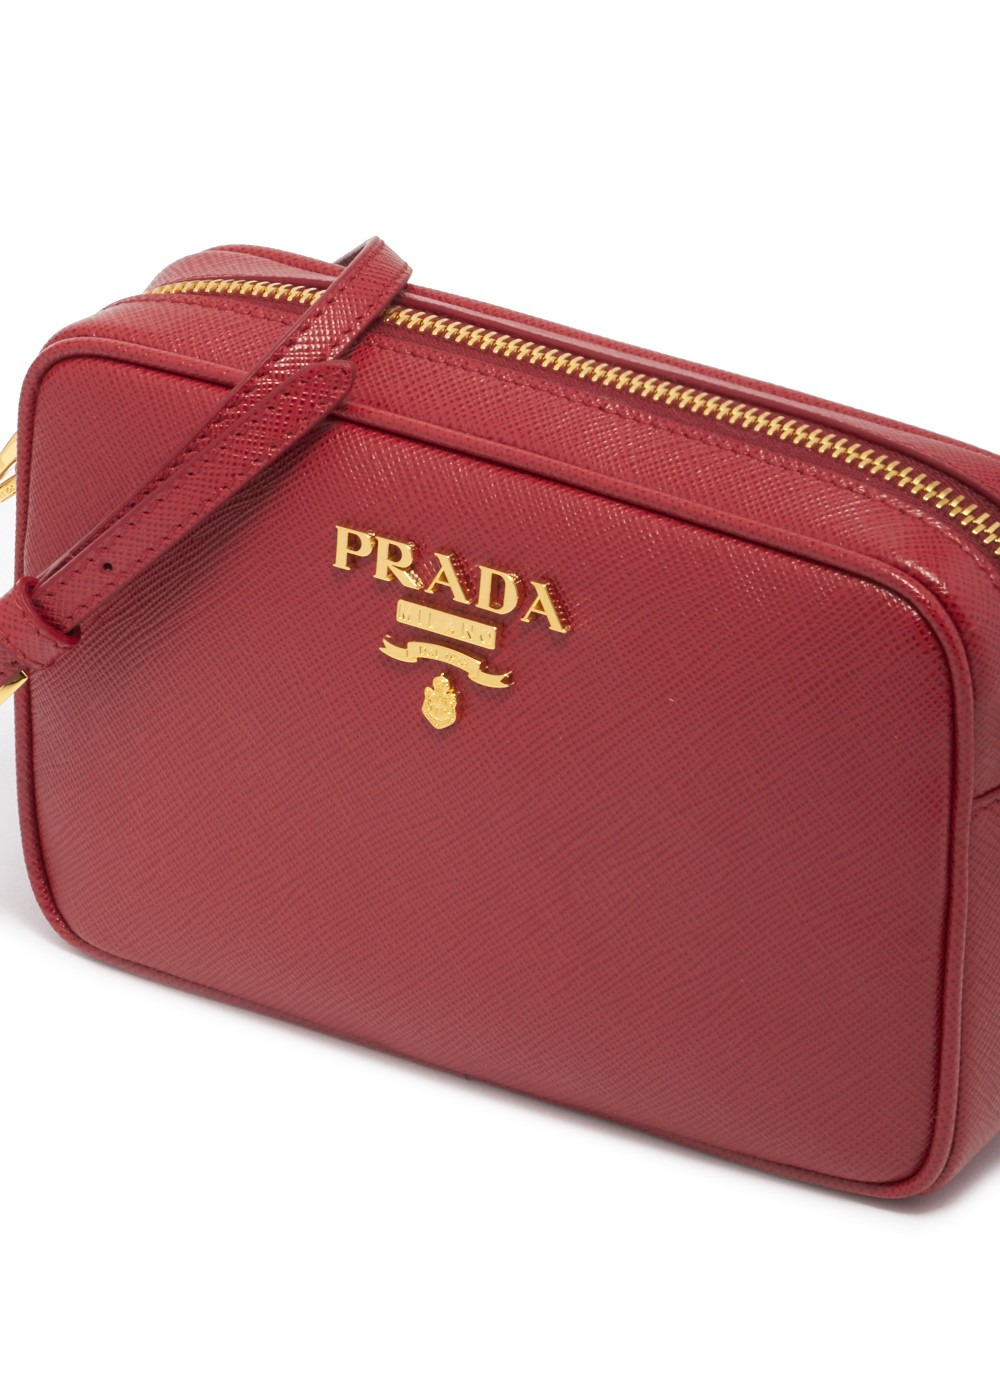 Leather Shoulder Bag|FUOCO|ショルダーバッグ|PRADA(T)|最大35%OFF